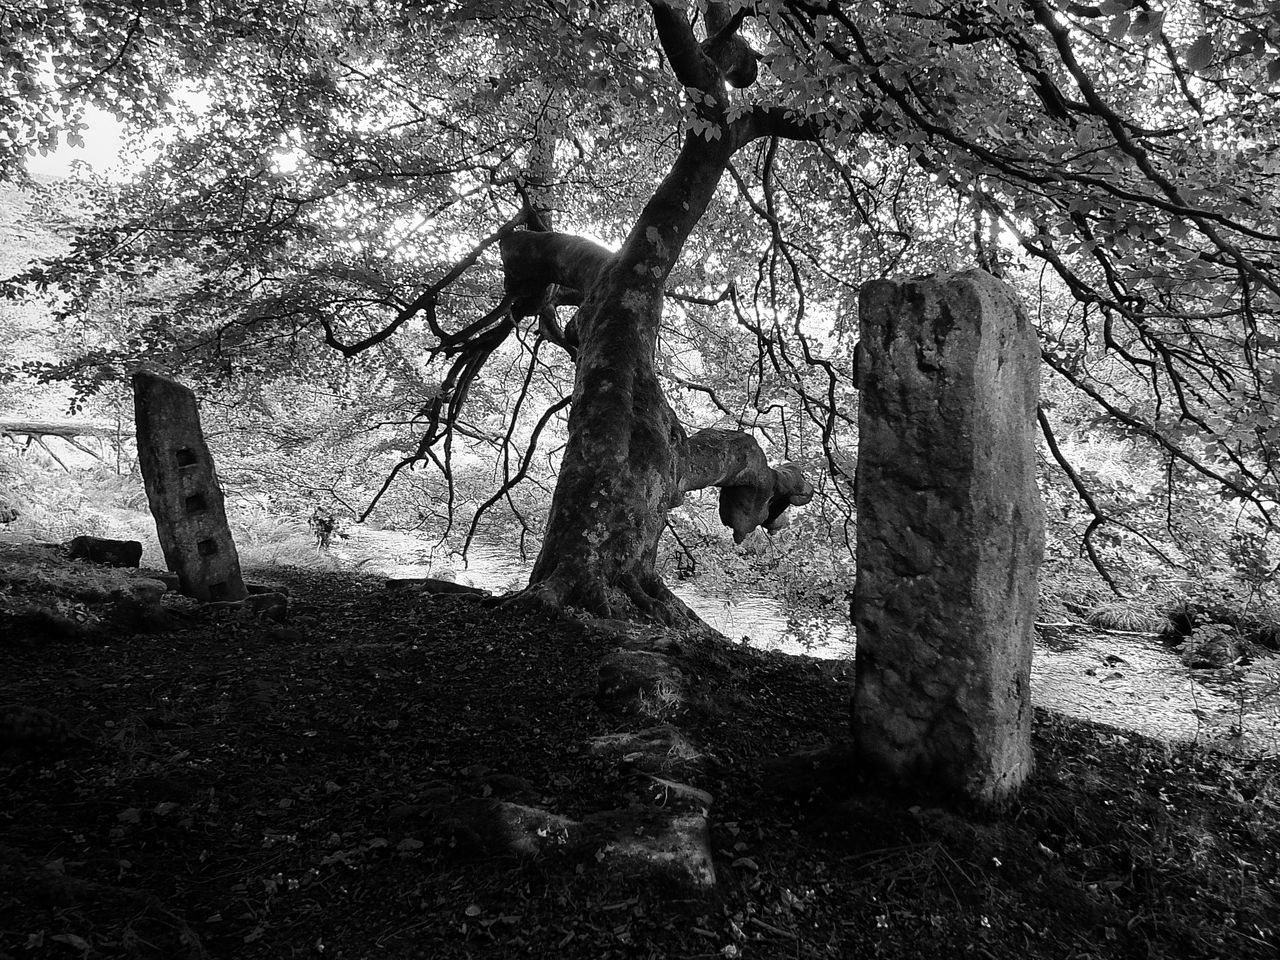 tree and two stones Branch Day Nature No People Outdoors Sky Standing Still Standing Stones Tranquility Tree Tree Trunk